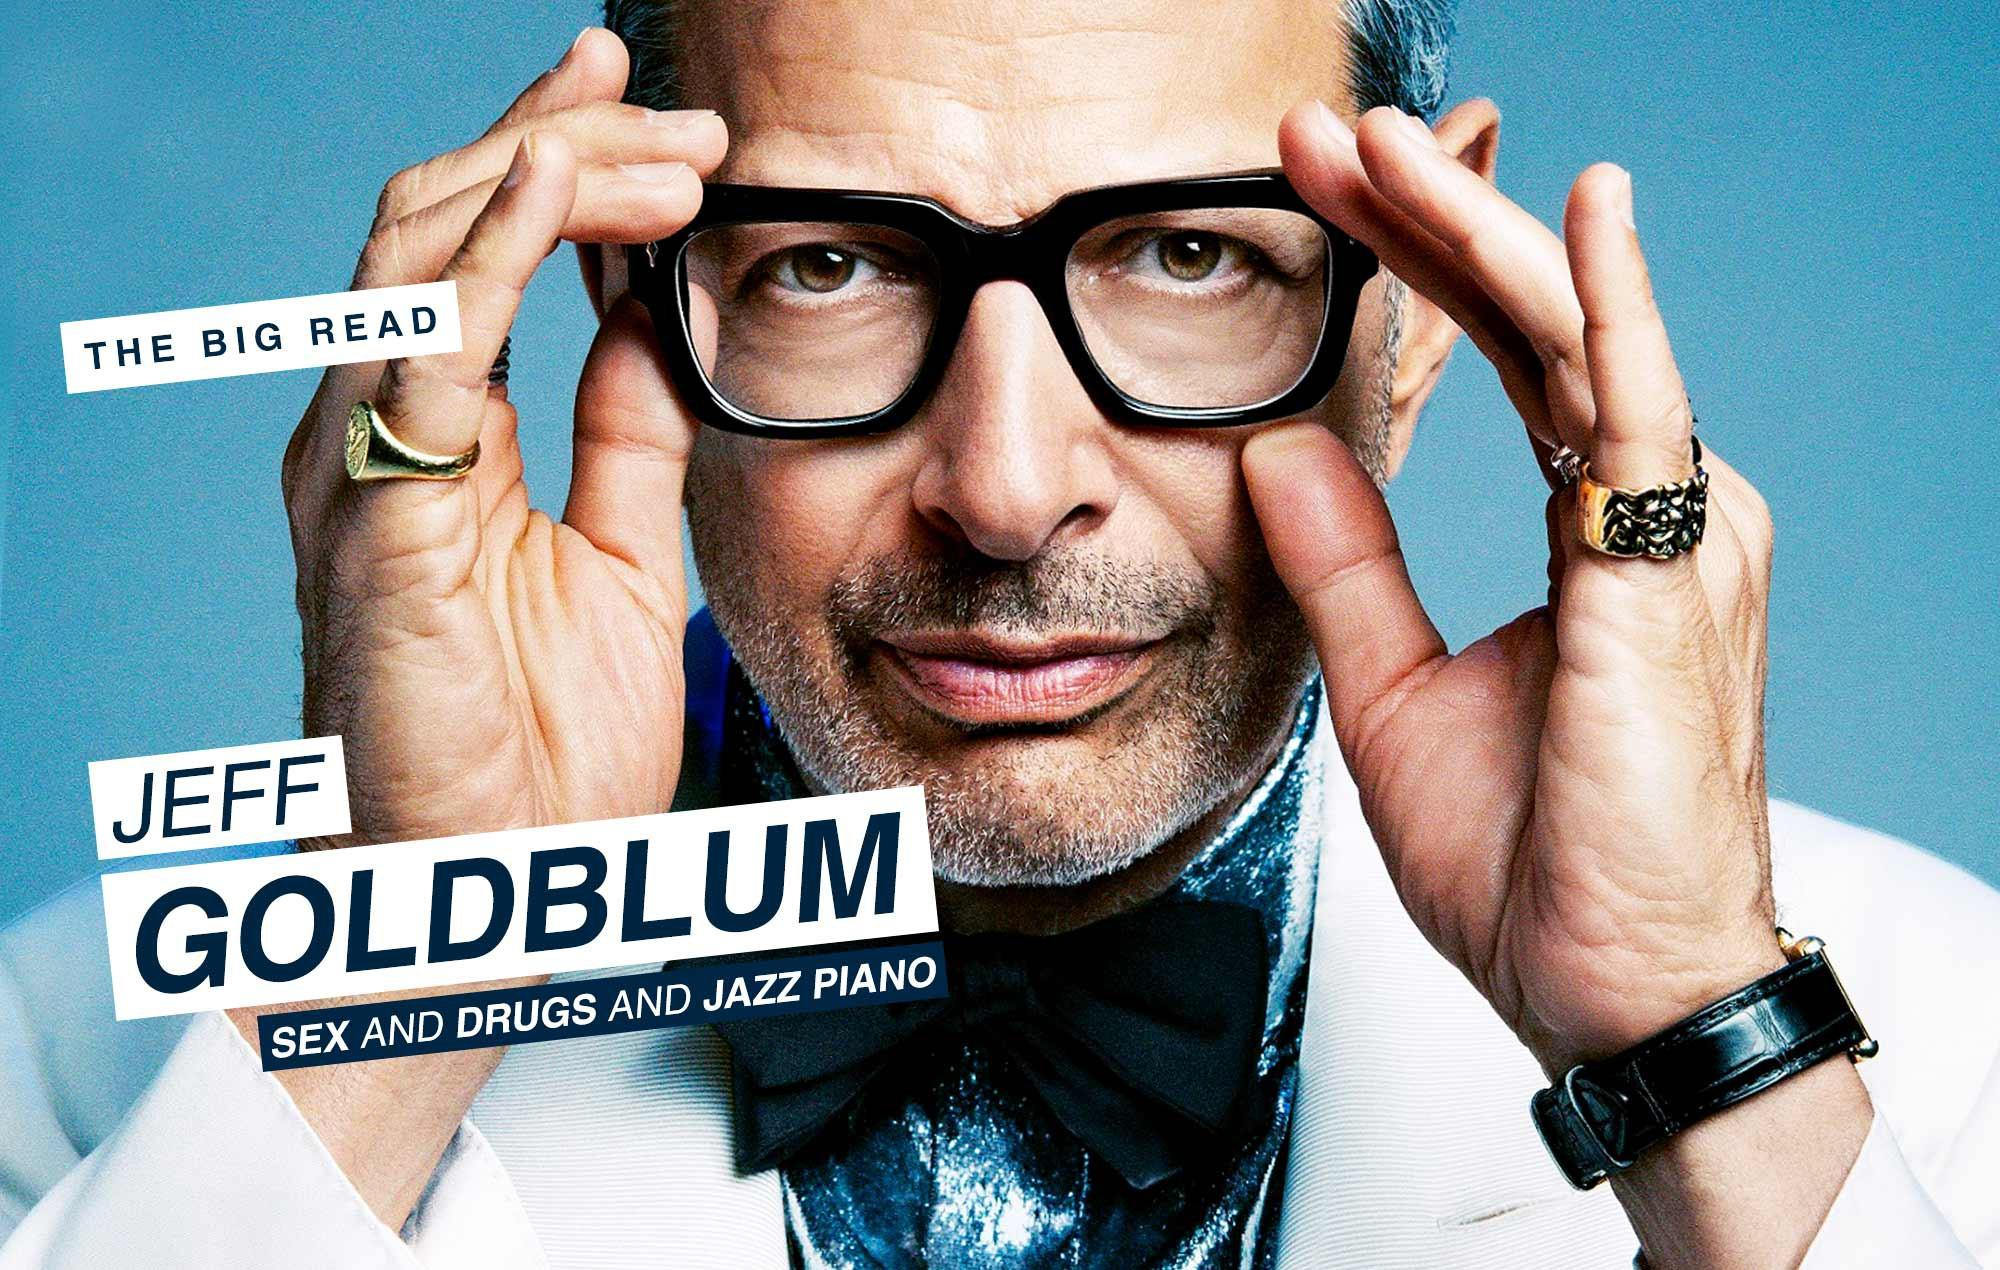 The Big Read – Jeff Goldblum: sex and drugs and jazz piano